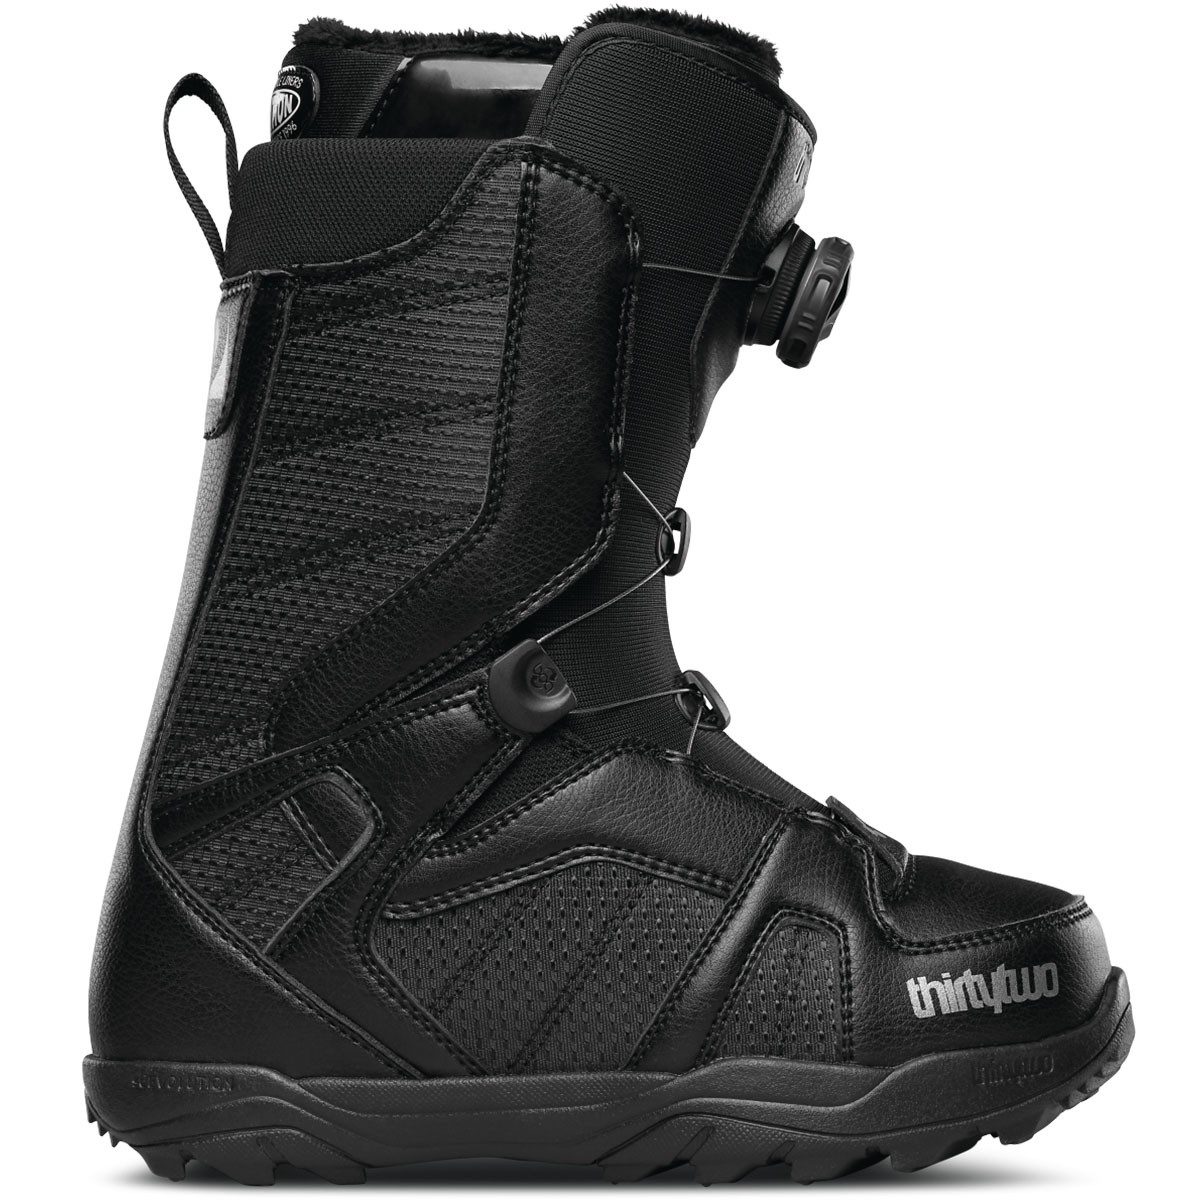 Thirty Two STW Boa Womens 2015 Snowboard Boots - Black